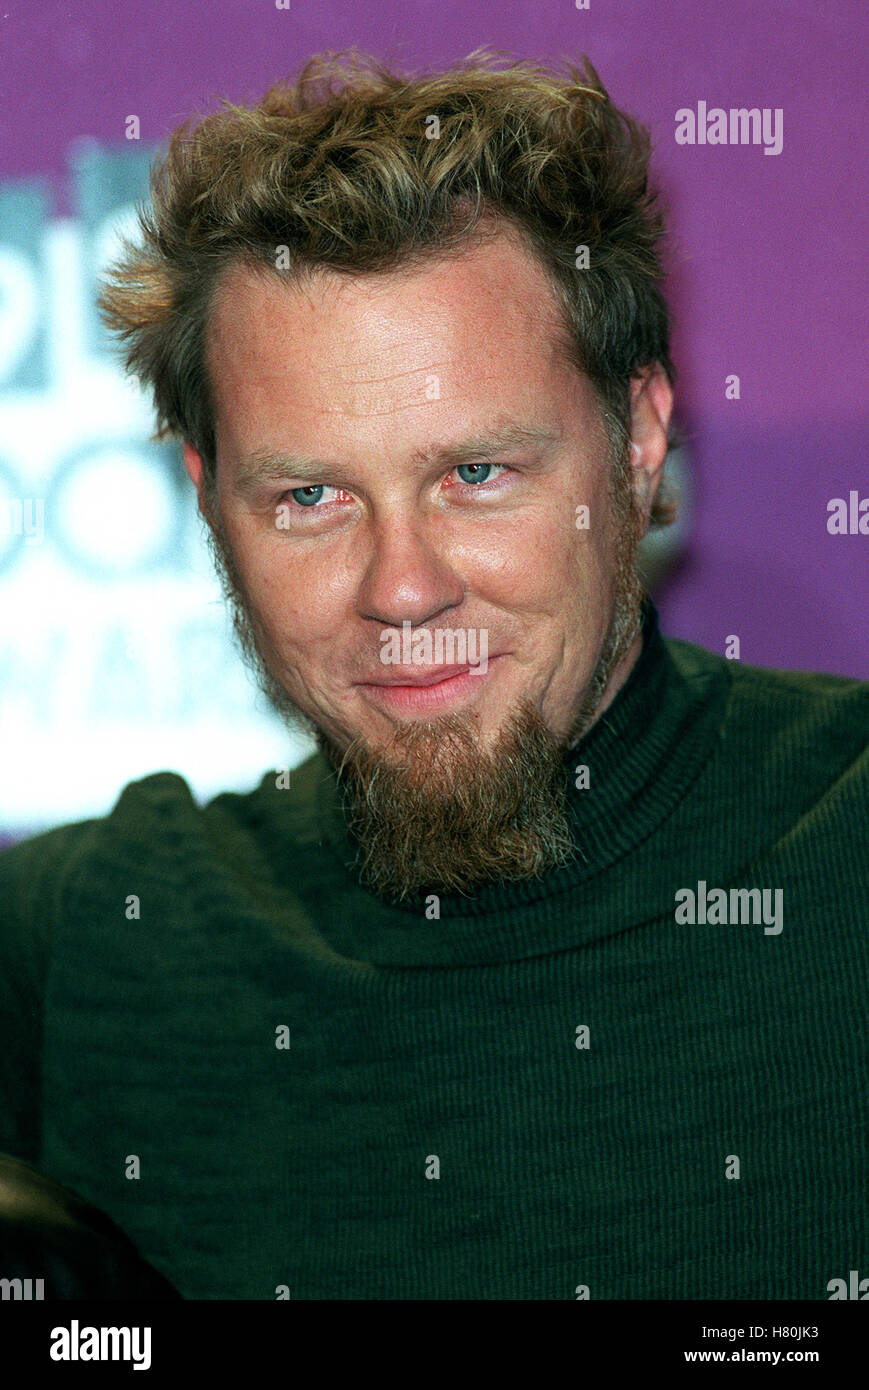 JAMES HETFIELD 13 December 1999 Stock Photo: 125404471 - Alamy